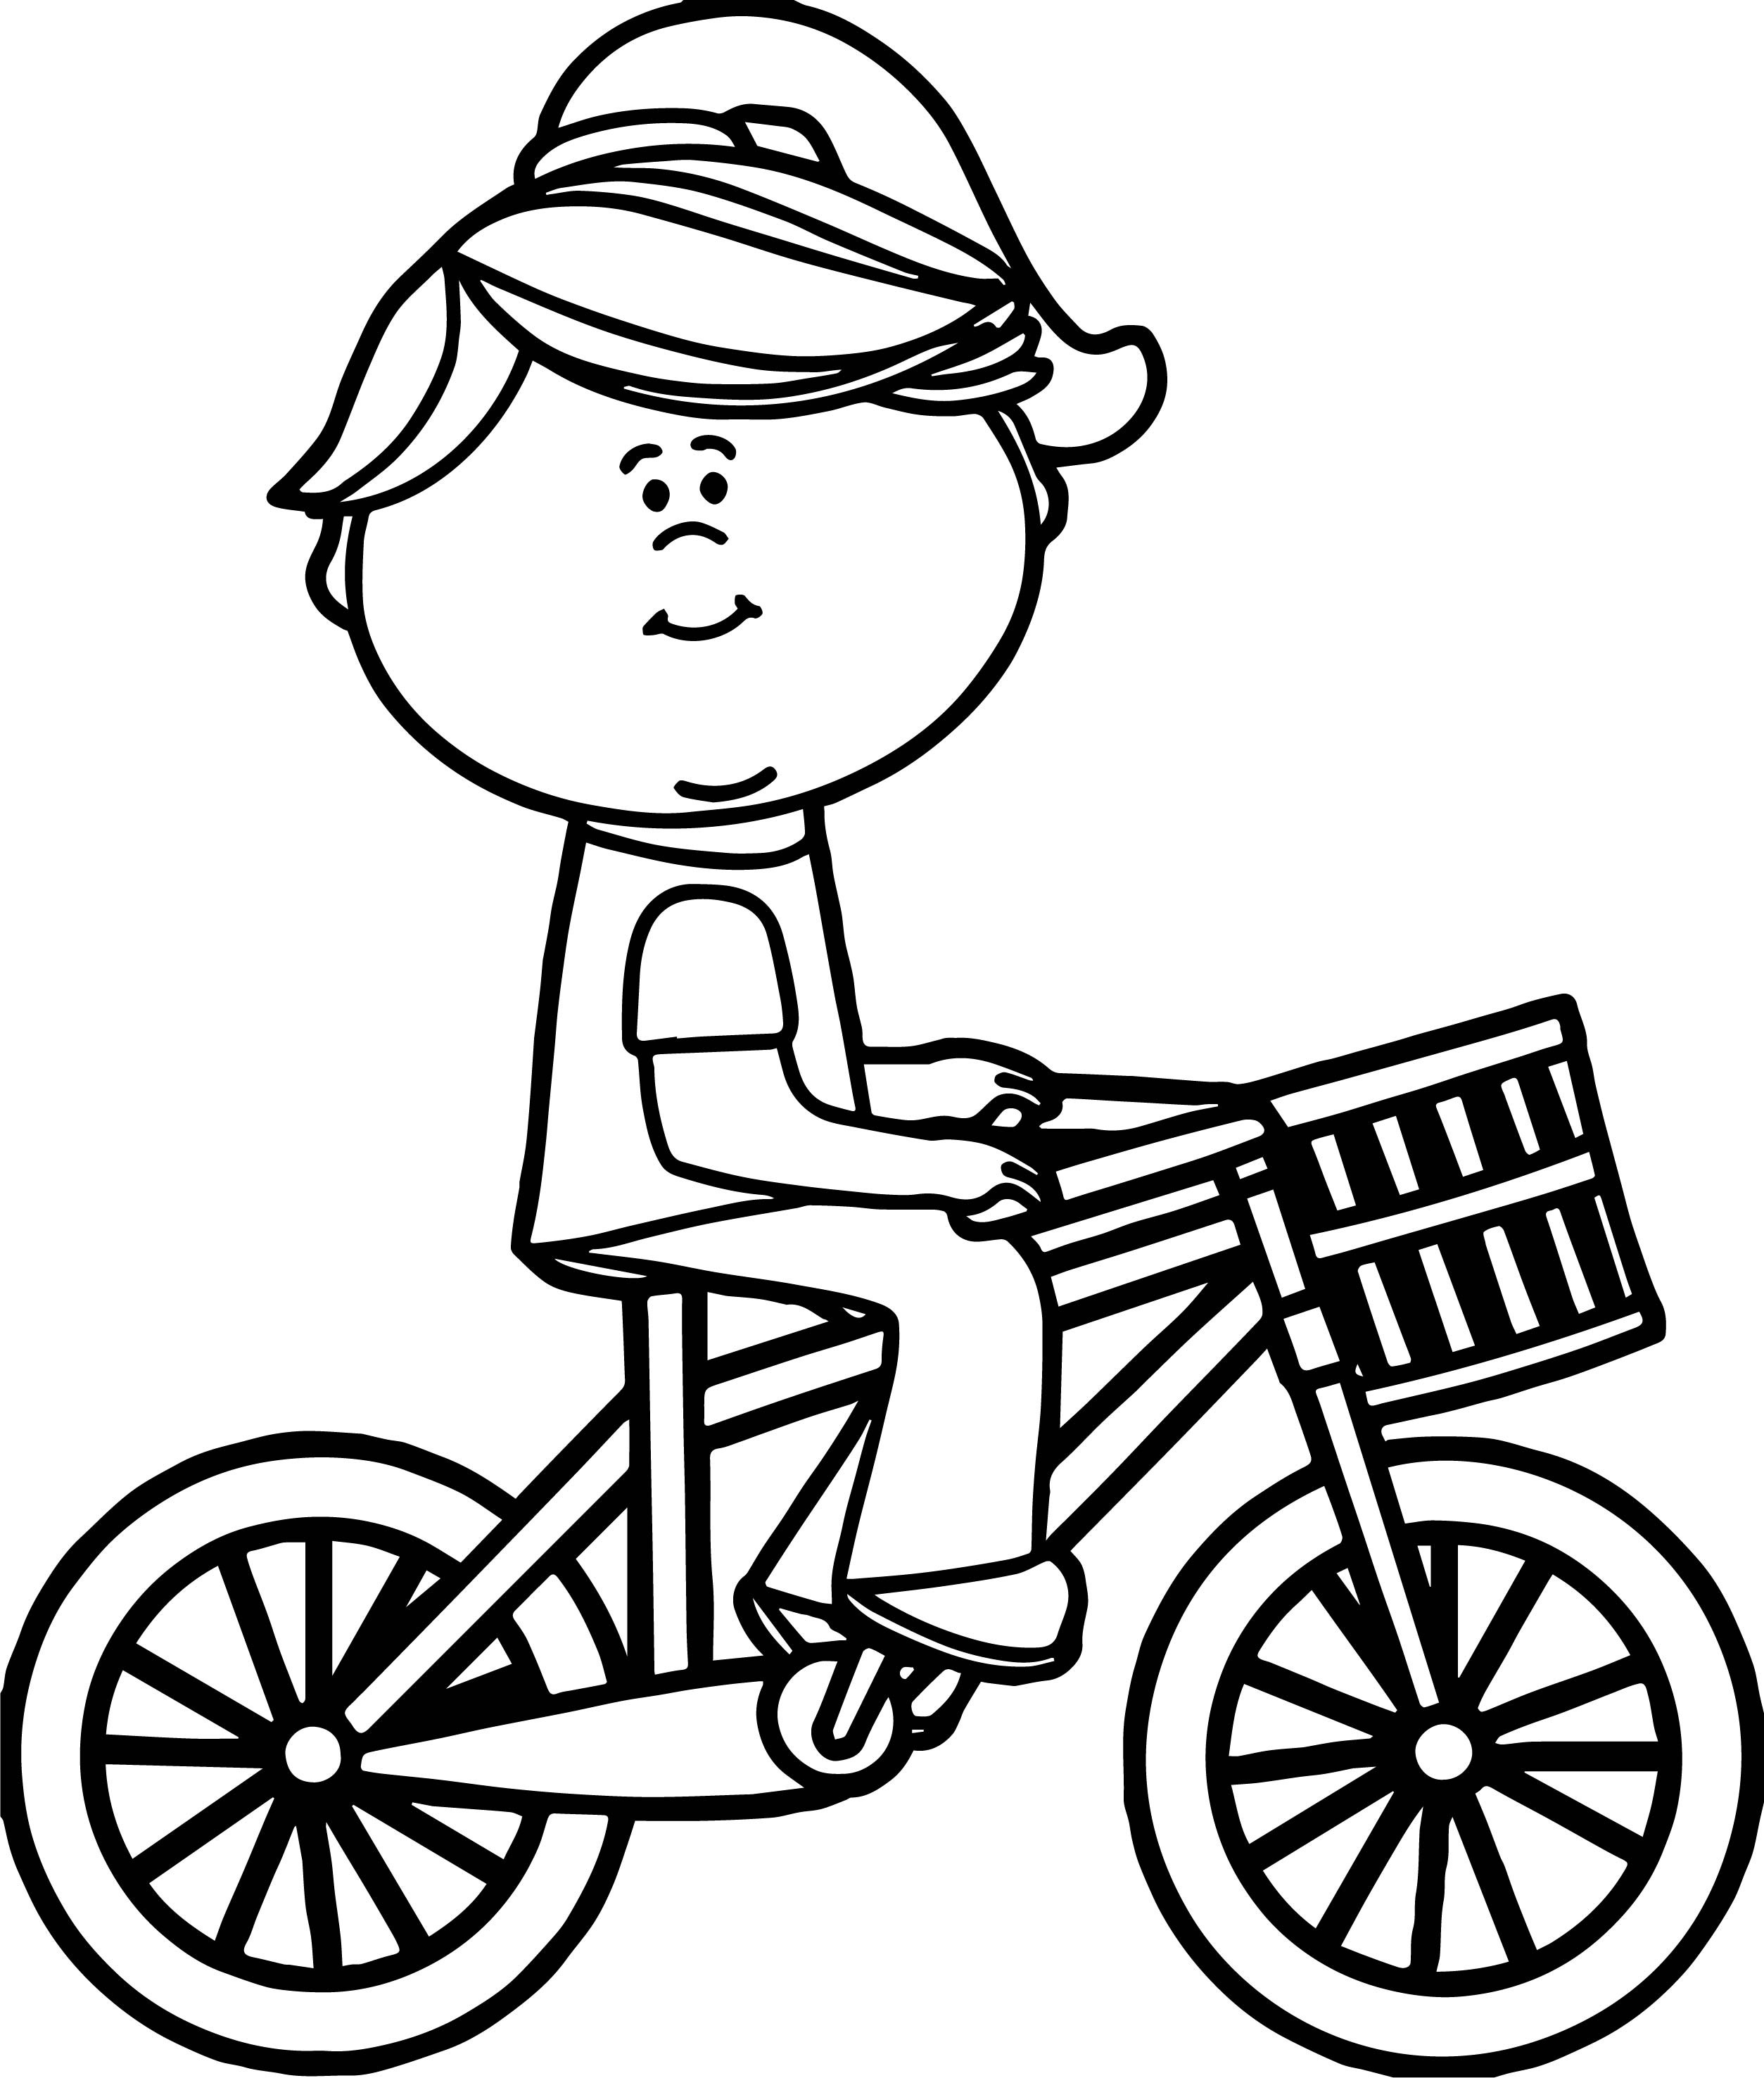 2507x2953 Girl Riding Bicycle With Basket Coloring Page Wecoloringpage